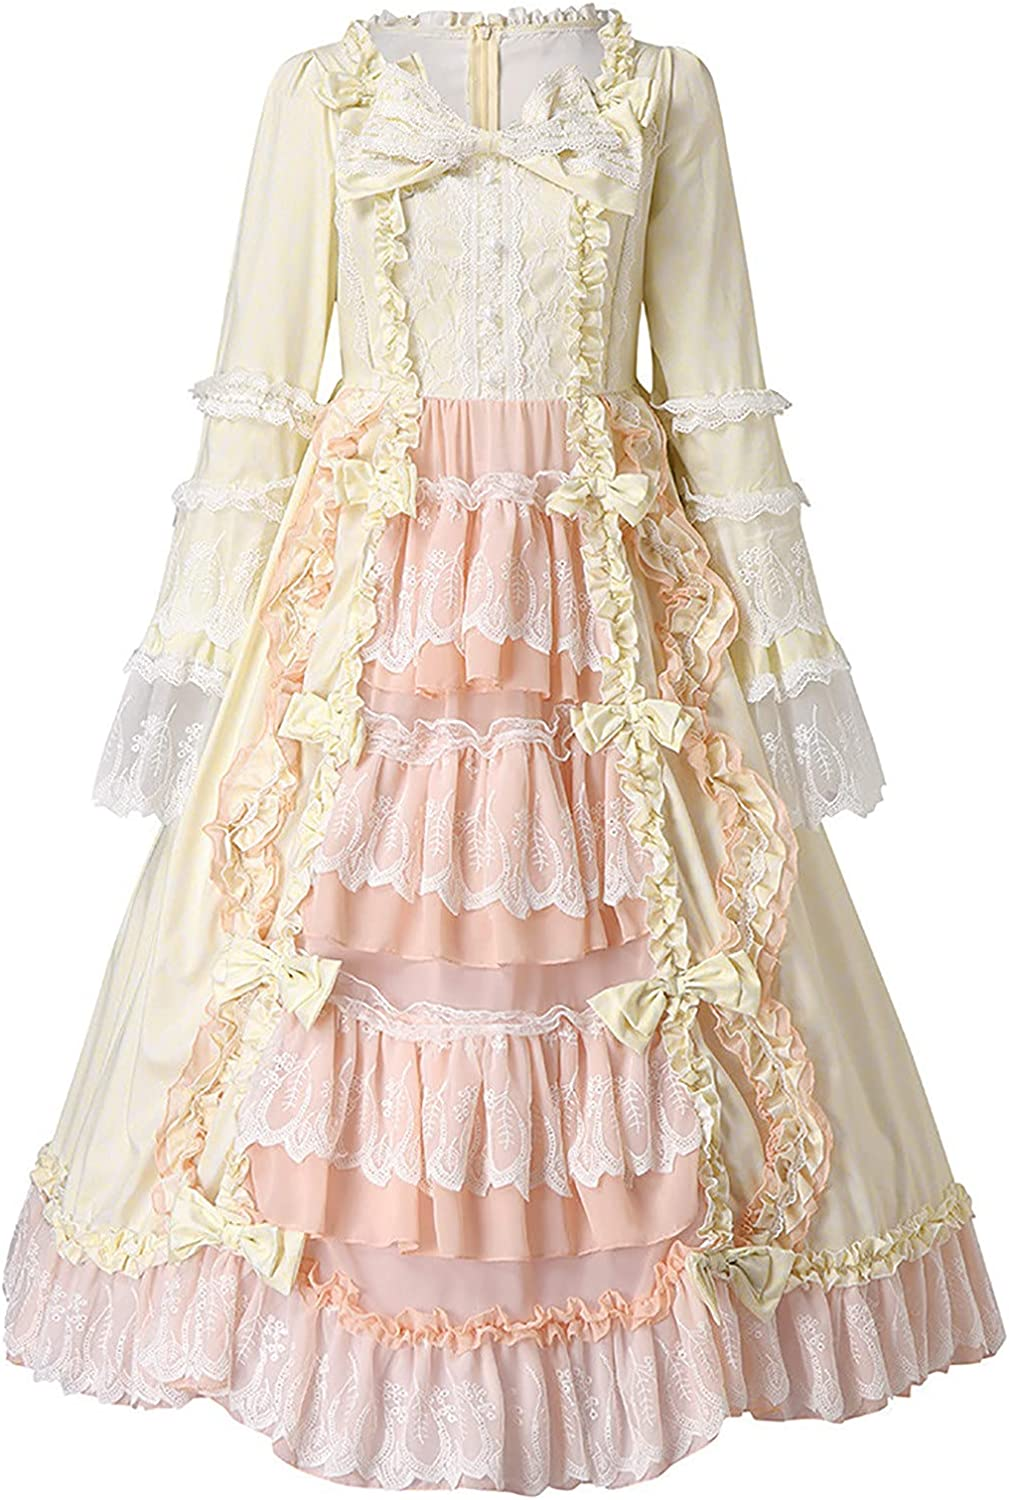 Lolita Dress for Women Plus Vintage Gothic Lace Popular products Size Ranking TOP19